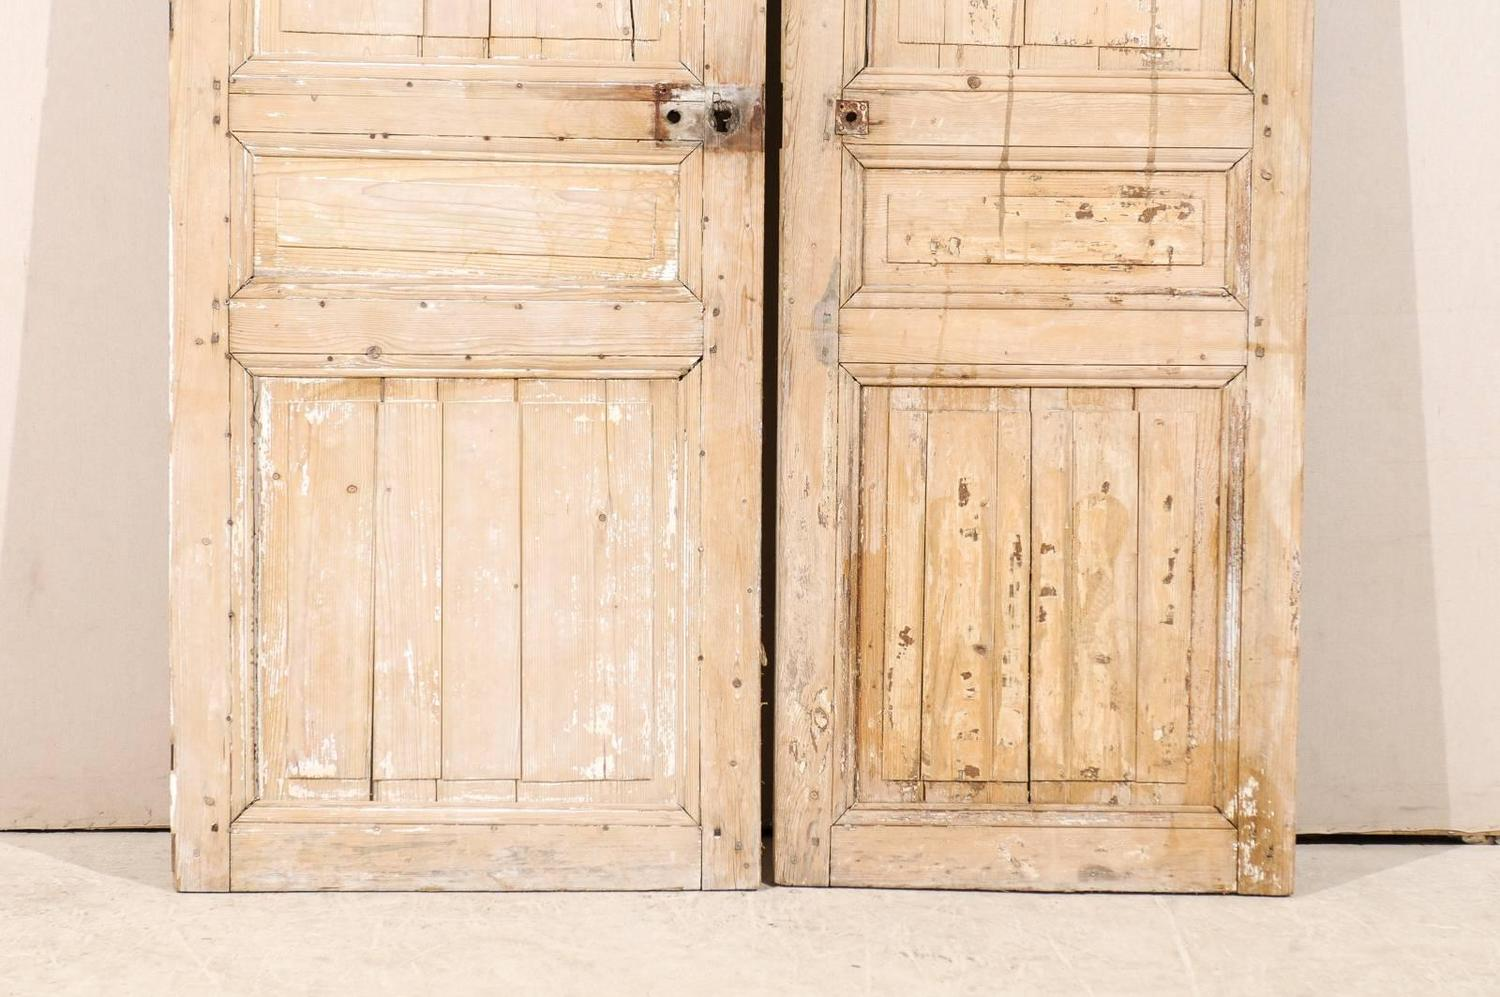 Pair of french 19th century wooden doors for sale at 1stdibs for Wooden french doors for sale